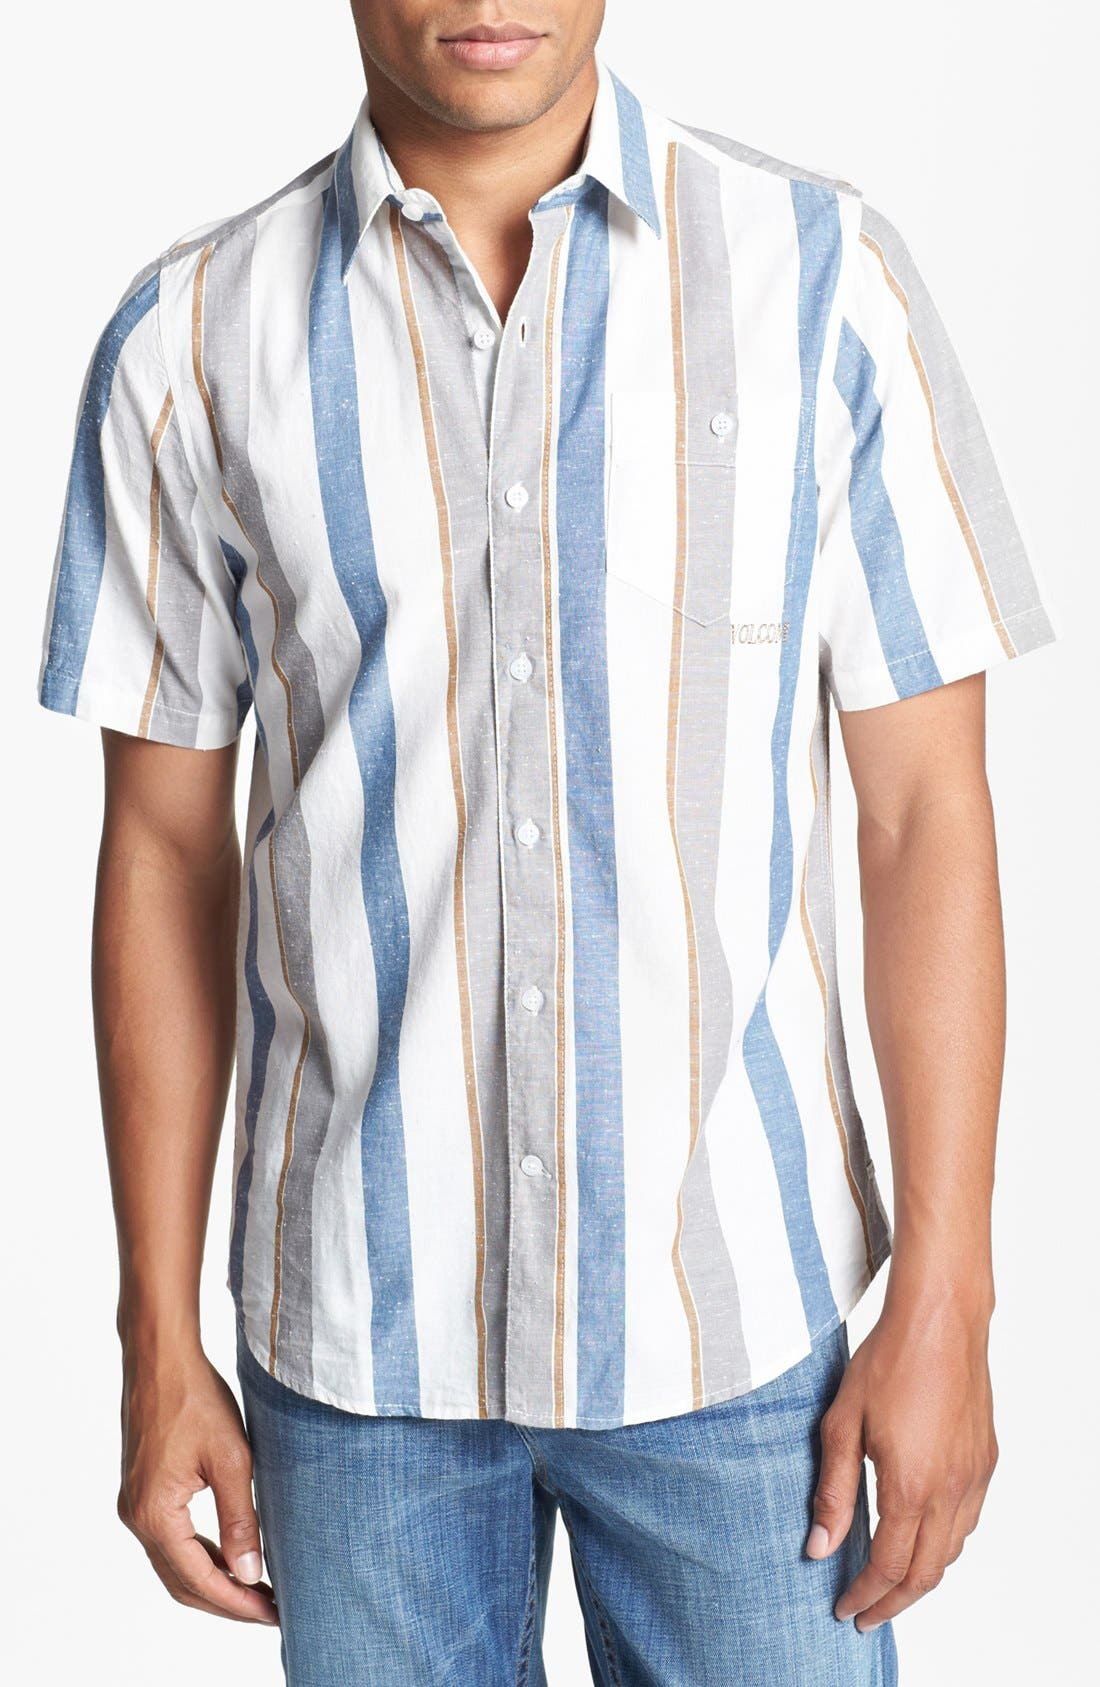 Alternate Image 1 Selected - Volcom 'Memento' Stripe Print Woven Shirt